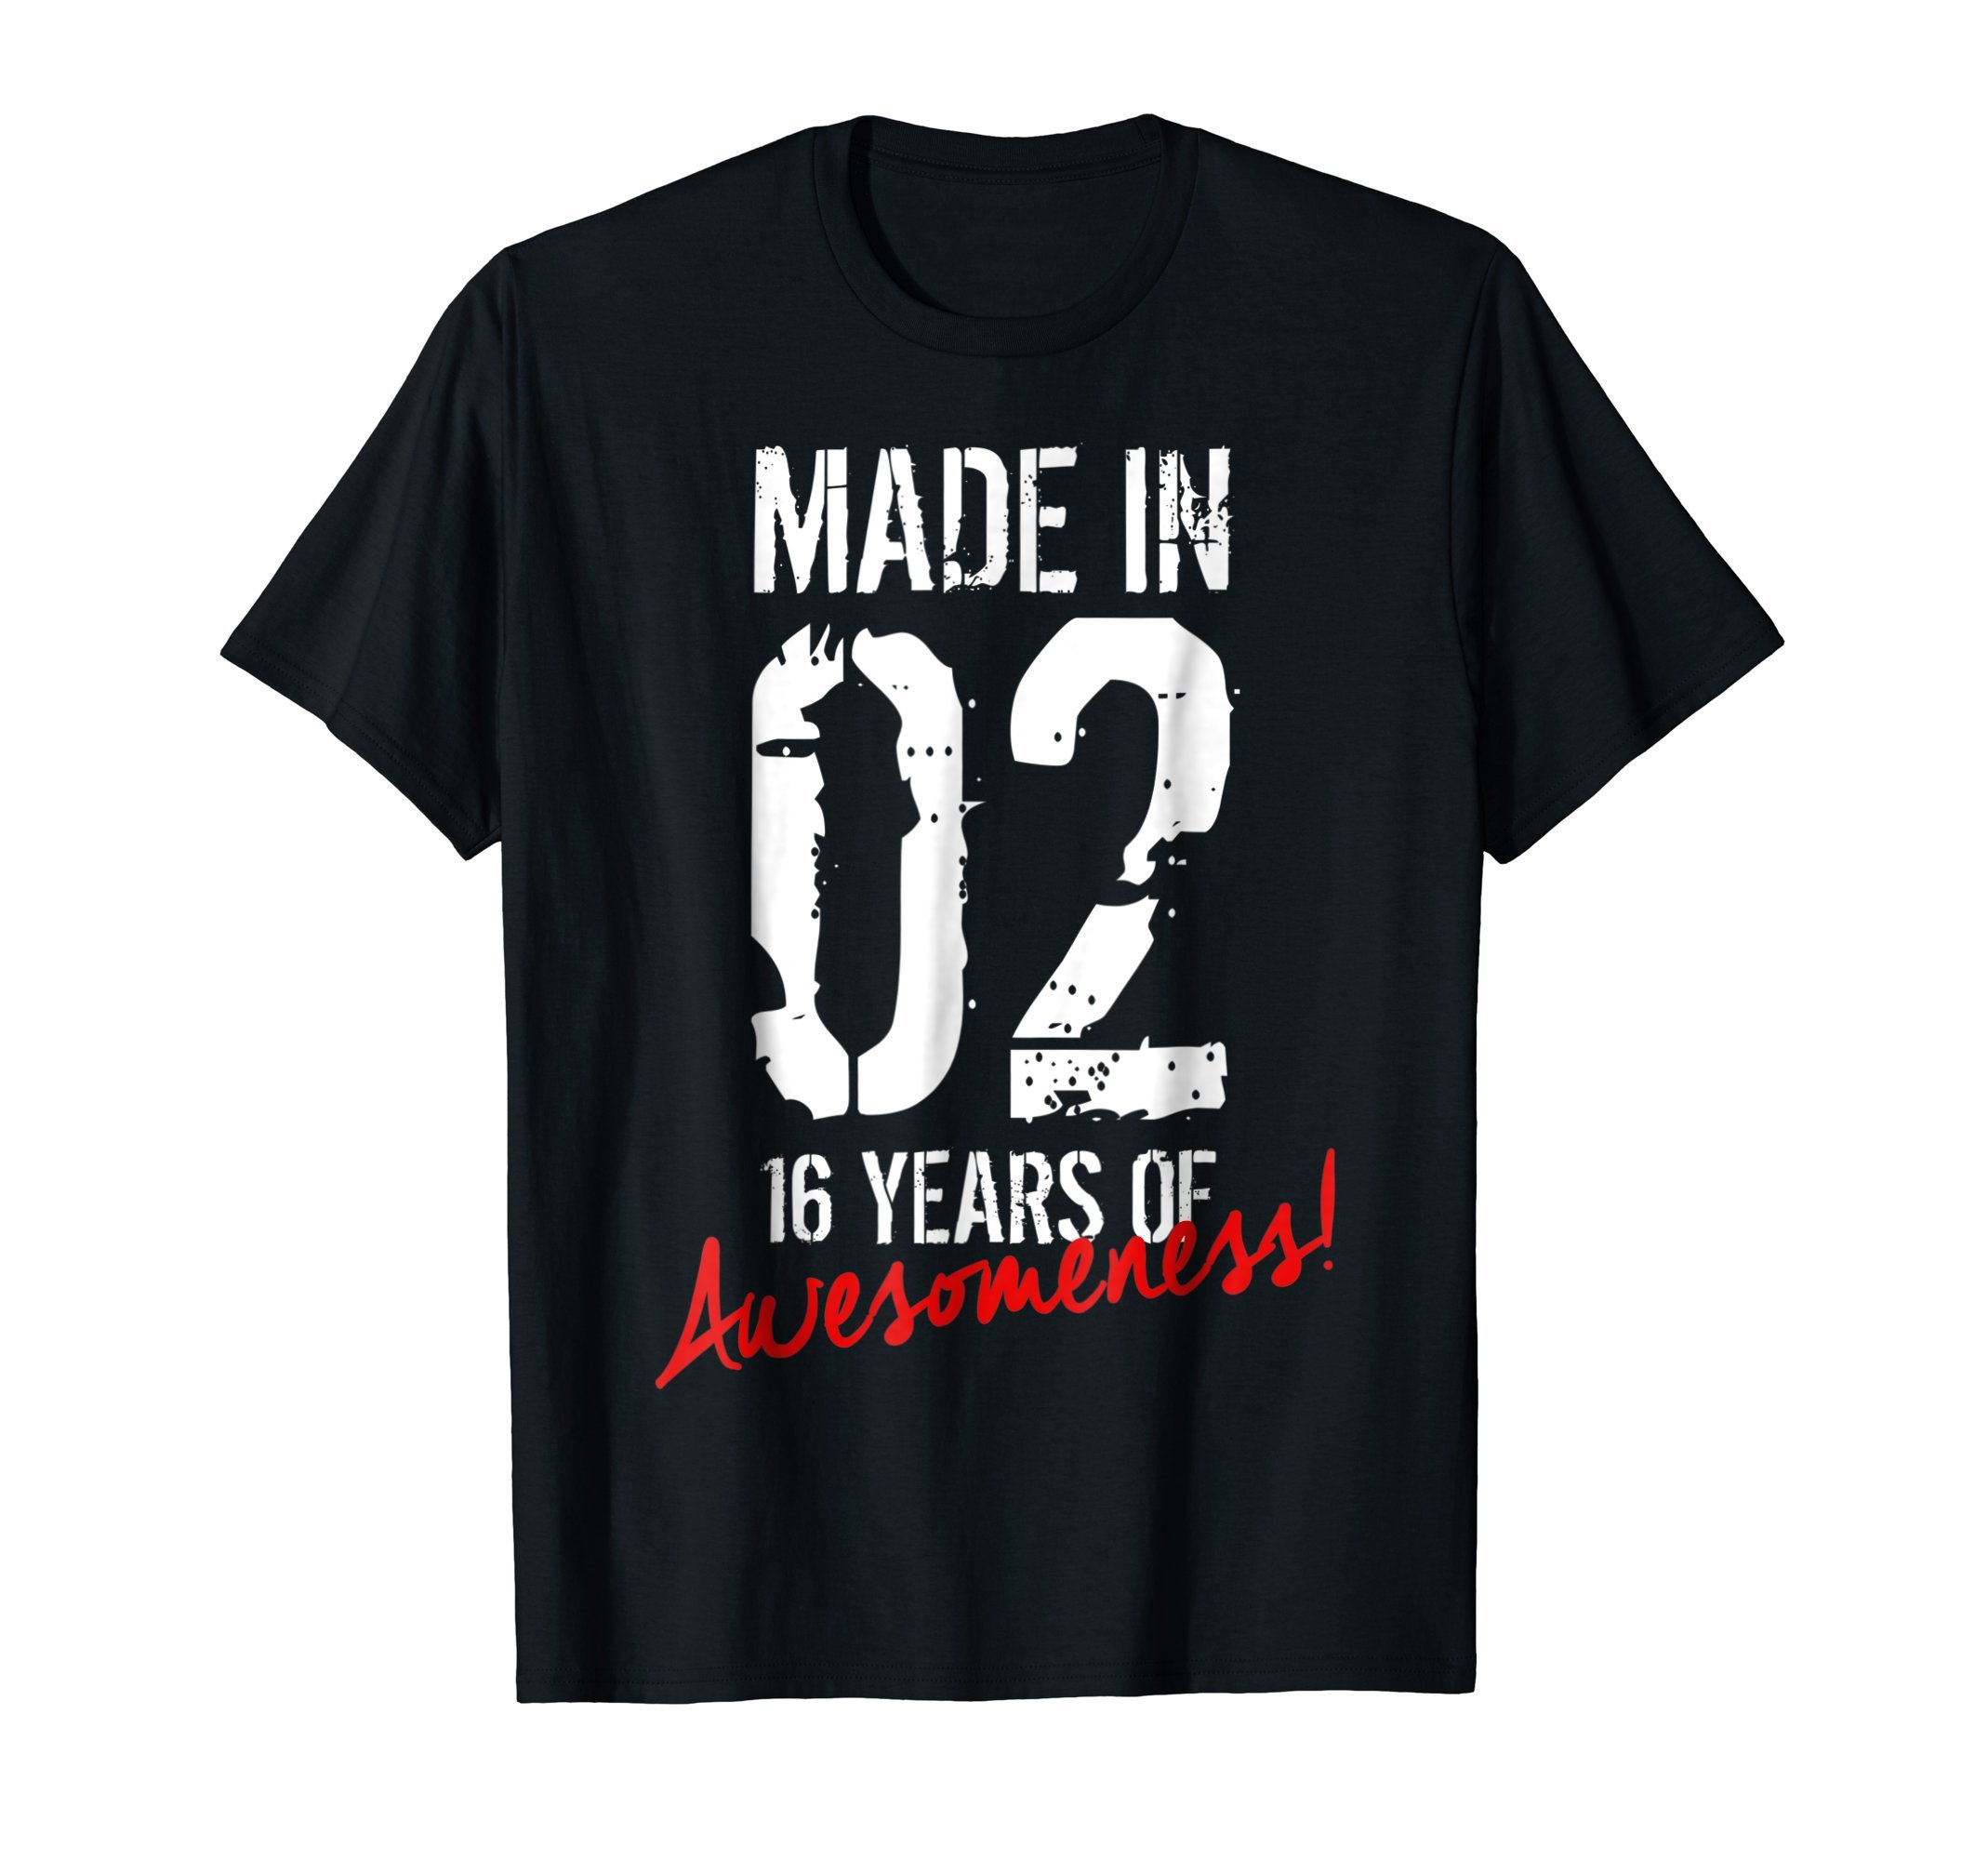 16 Year Old Birthday Gift Shirt Born in 2002 16th Birthday by Cool Birthday Shirts For Boys & Girls Co. (Image #1)